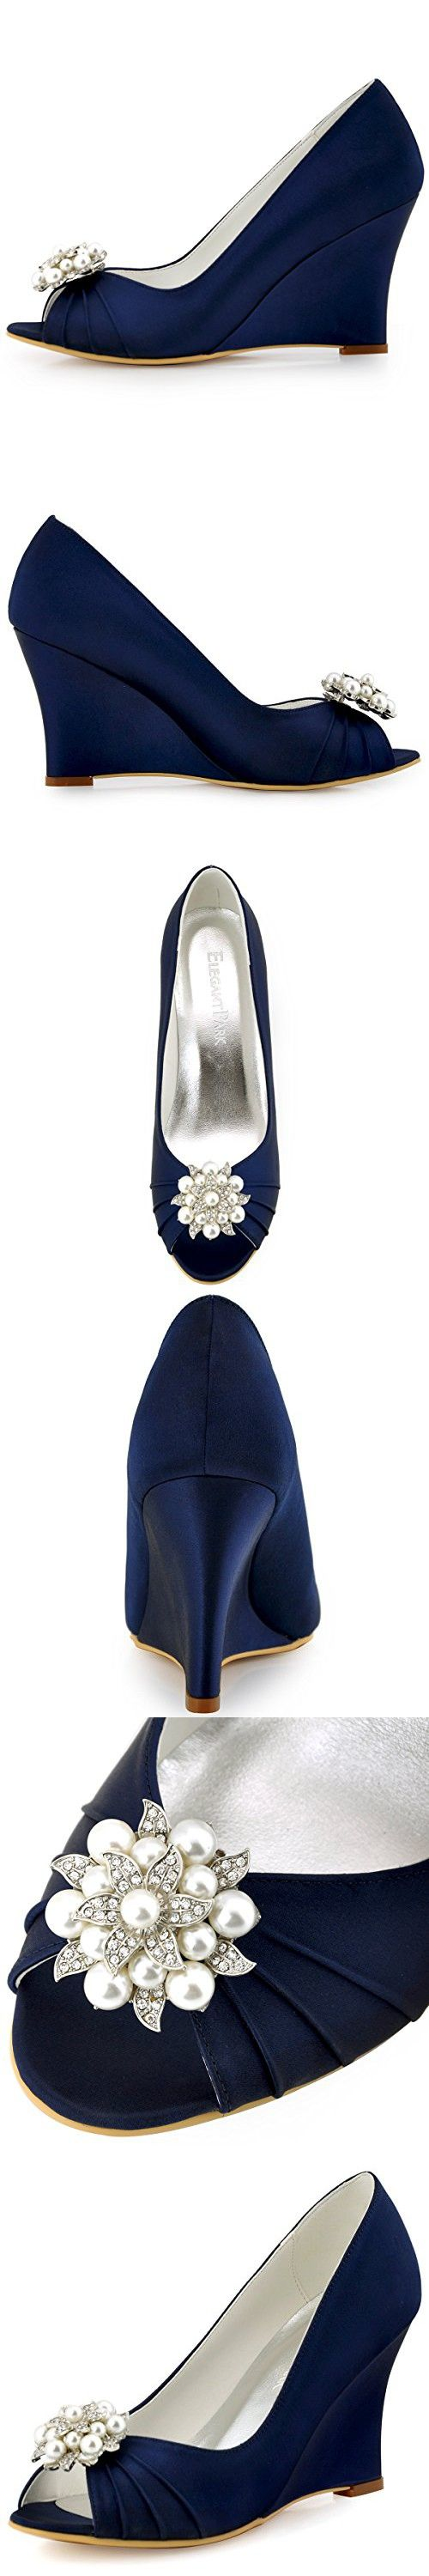 ElegantPark WP1549 Women Wedges Heel Pearls Clips Peep Toe Pumps Satin Wedding Evening Dress Shoes Navy Blue US 10